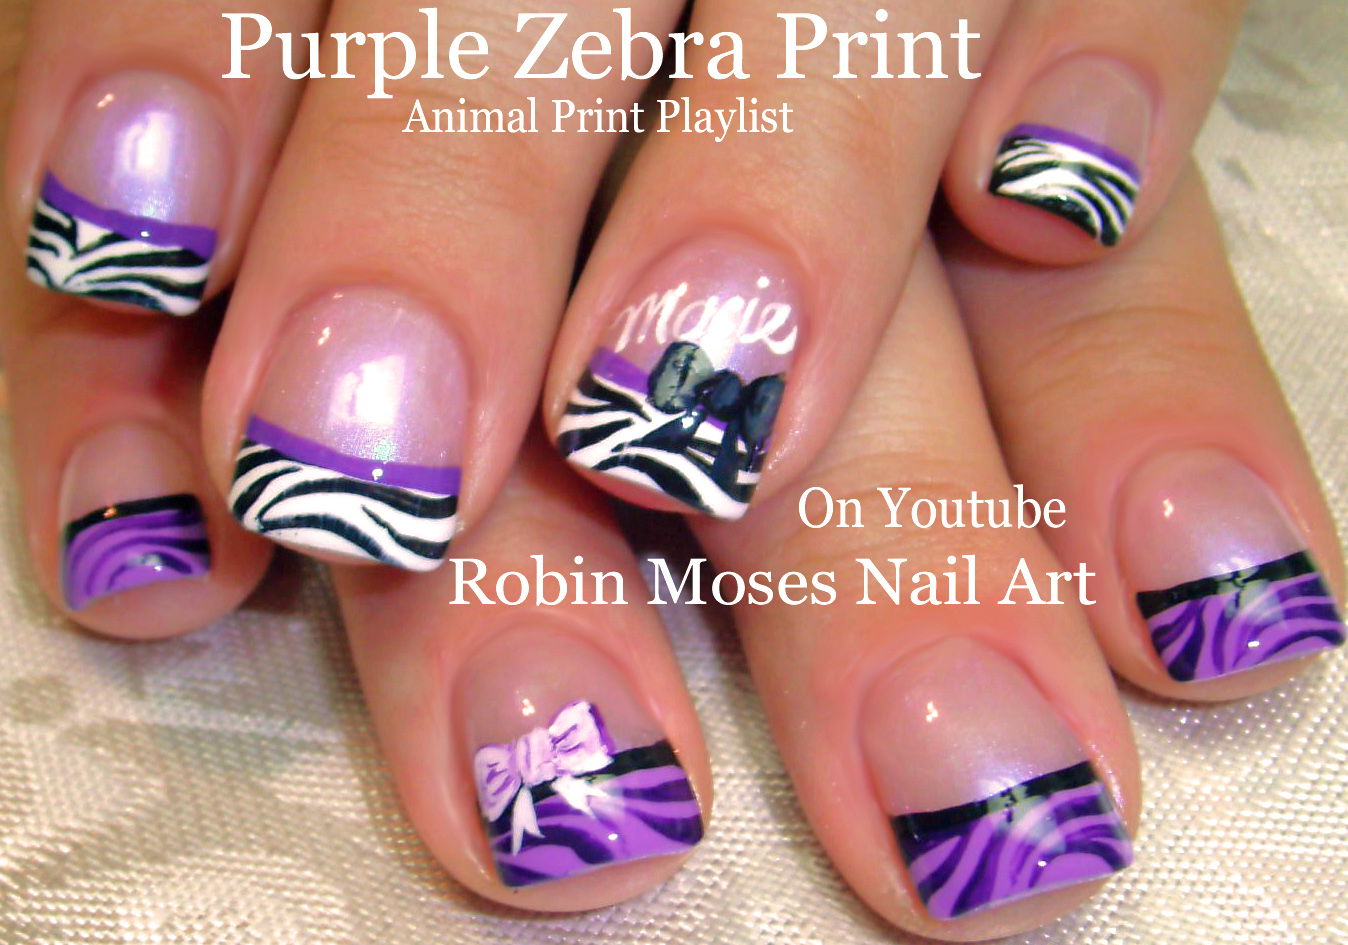 Nail Art by Robin Moses: Hot Pink Nails with Black and Silver Zebra ...